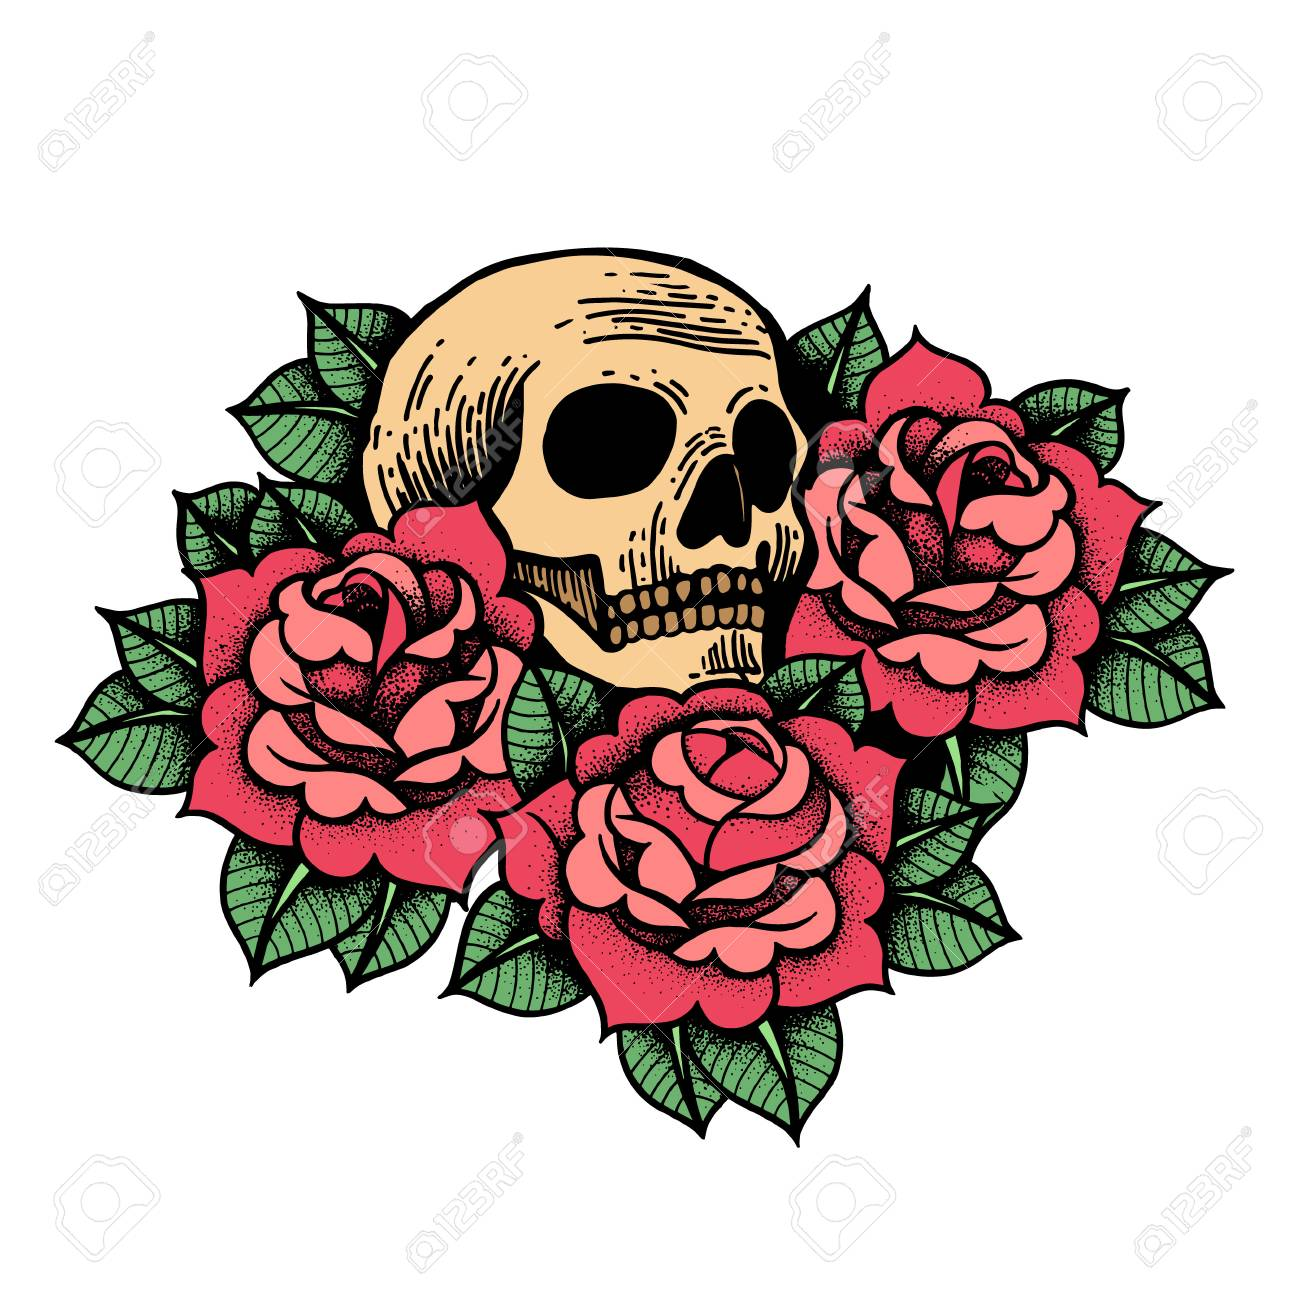 8a7af5732 Rose tattoo with skull. Traditional black dot style ink. Roses isolated  vector illustration.